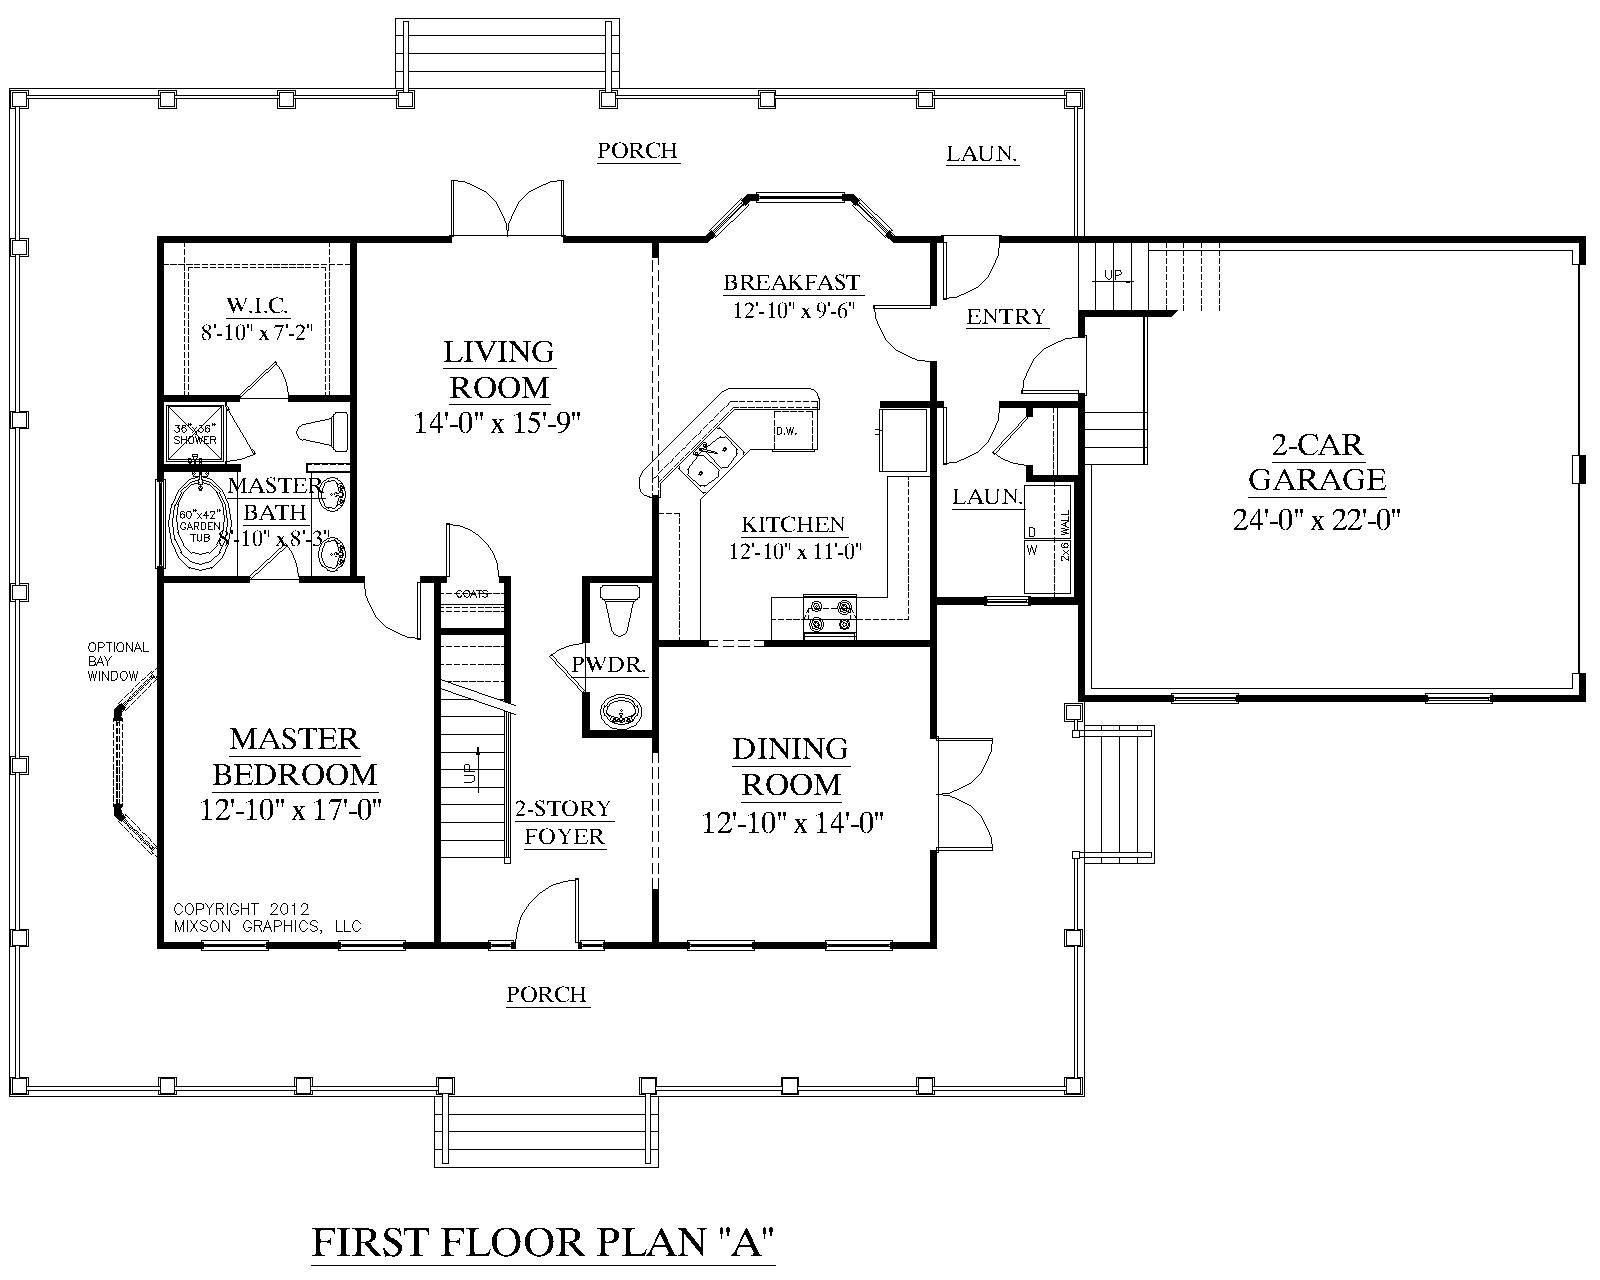 House plan 2341 a montgomery a first floor plan for Two story house plans with master bedroom on first floor